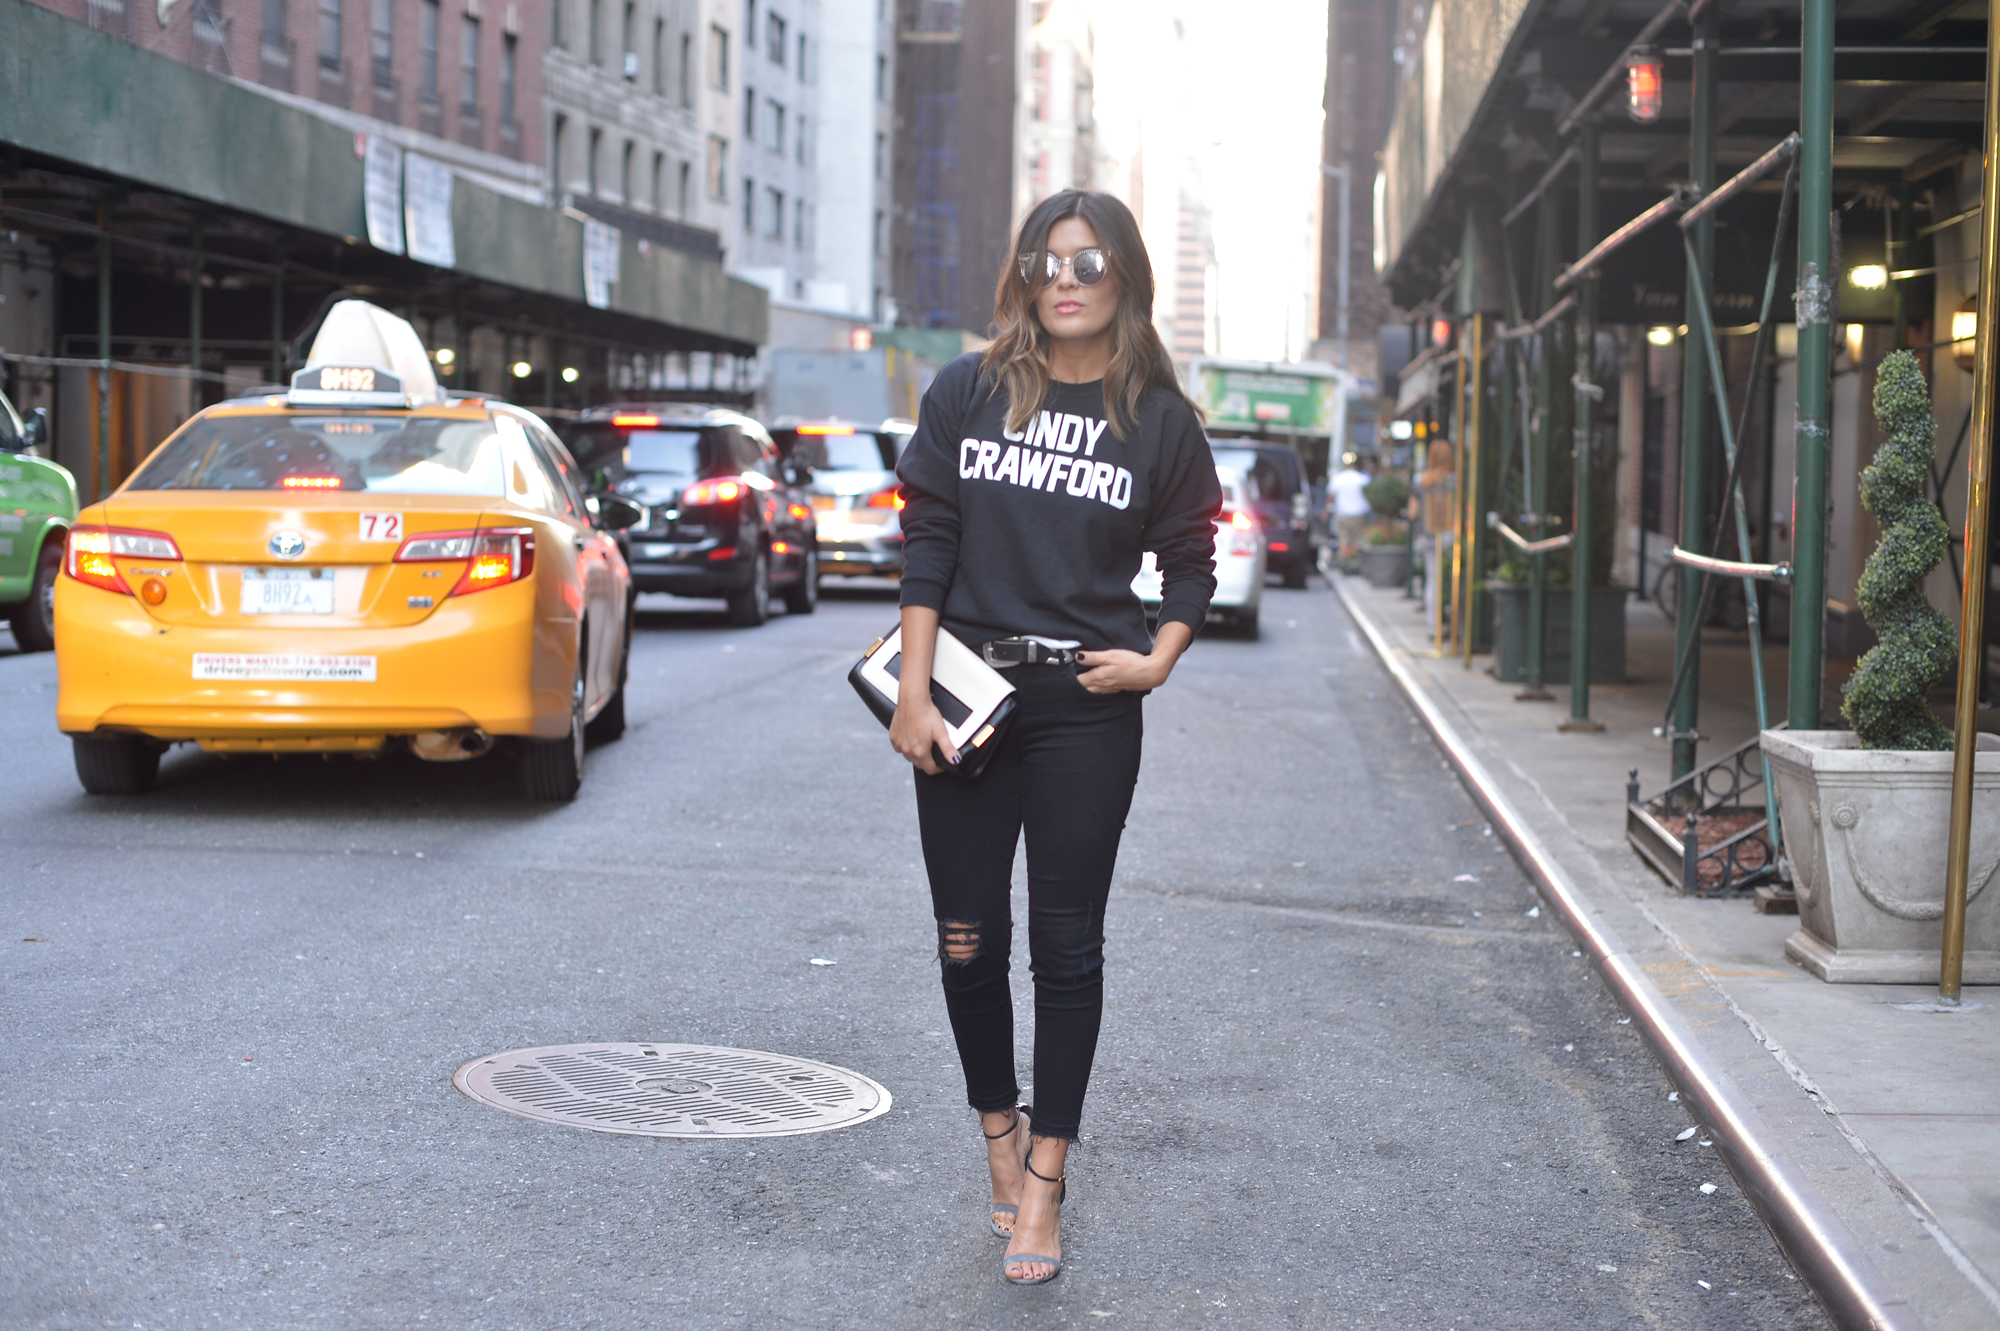 Cindy Crawford Reformation Sweatshirt